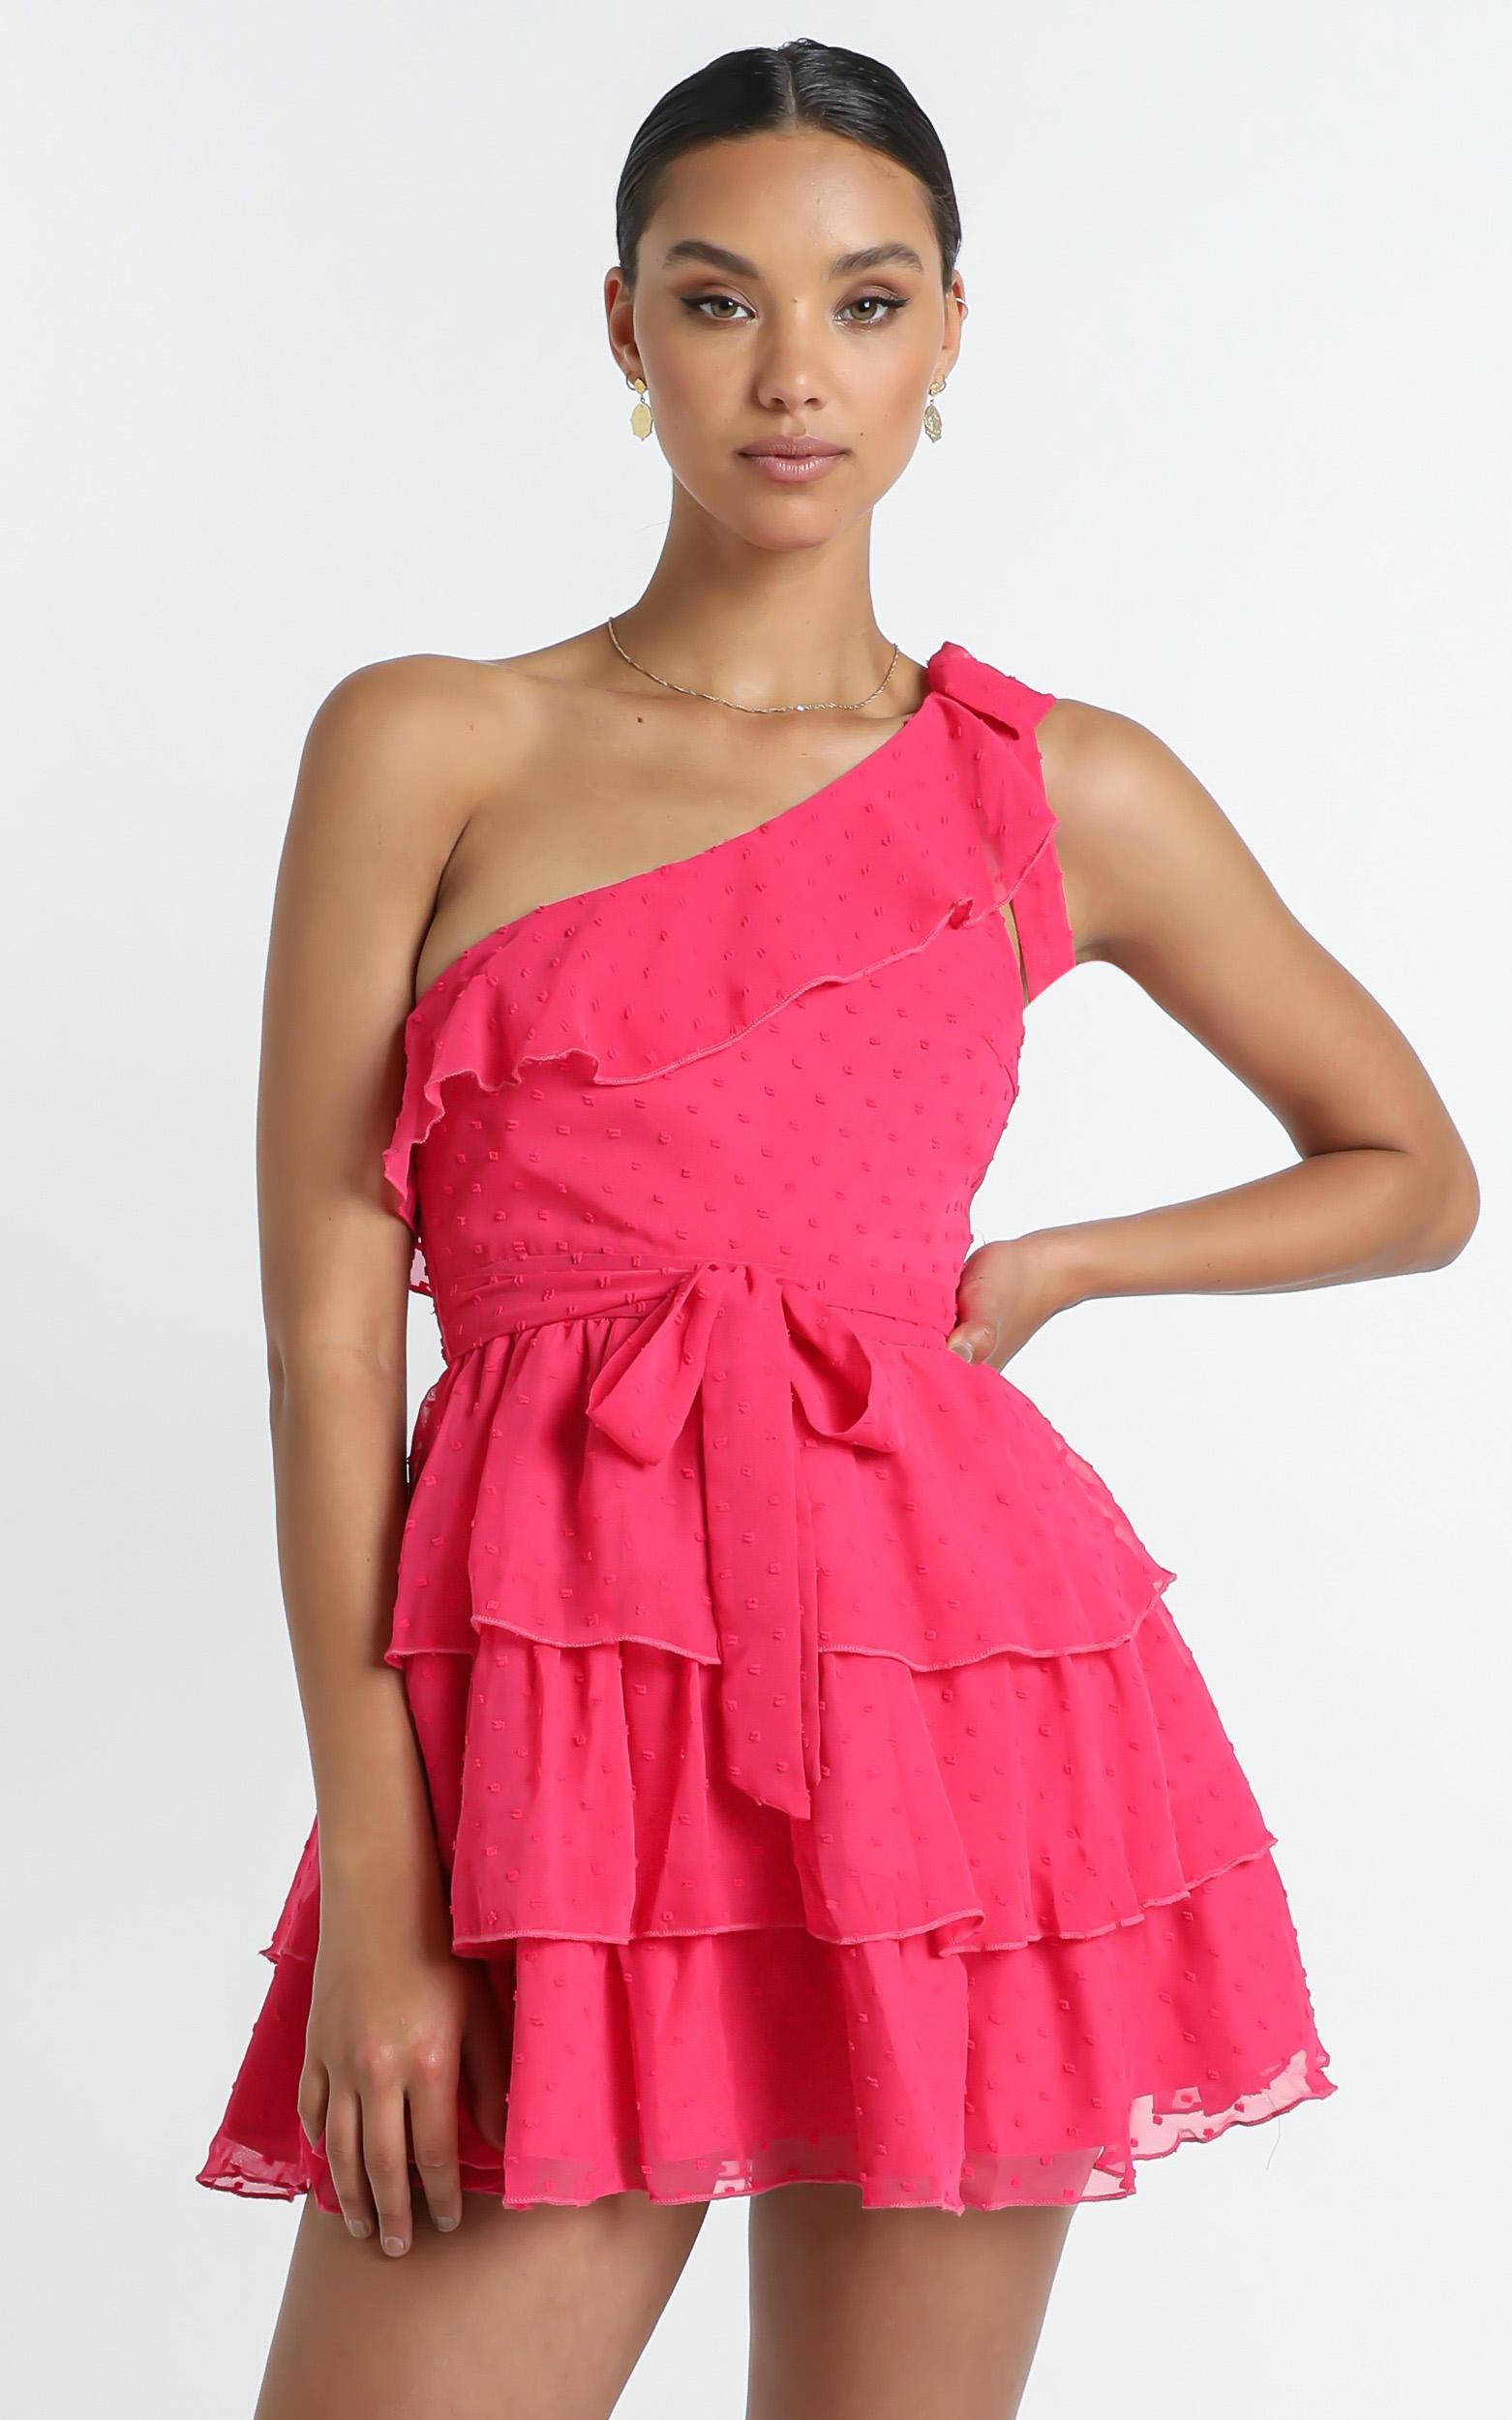 Darling I Am A Daydream Dress In hot pink - 16 (XXL), Pink, hi-res image number null